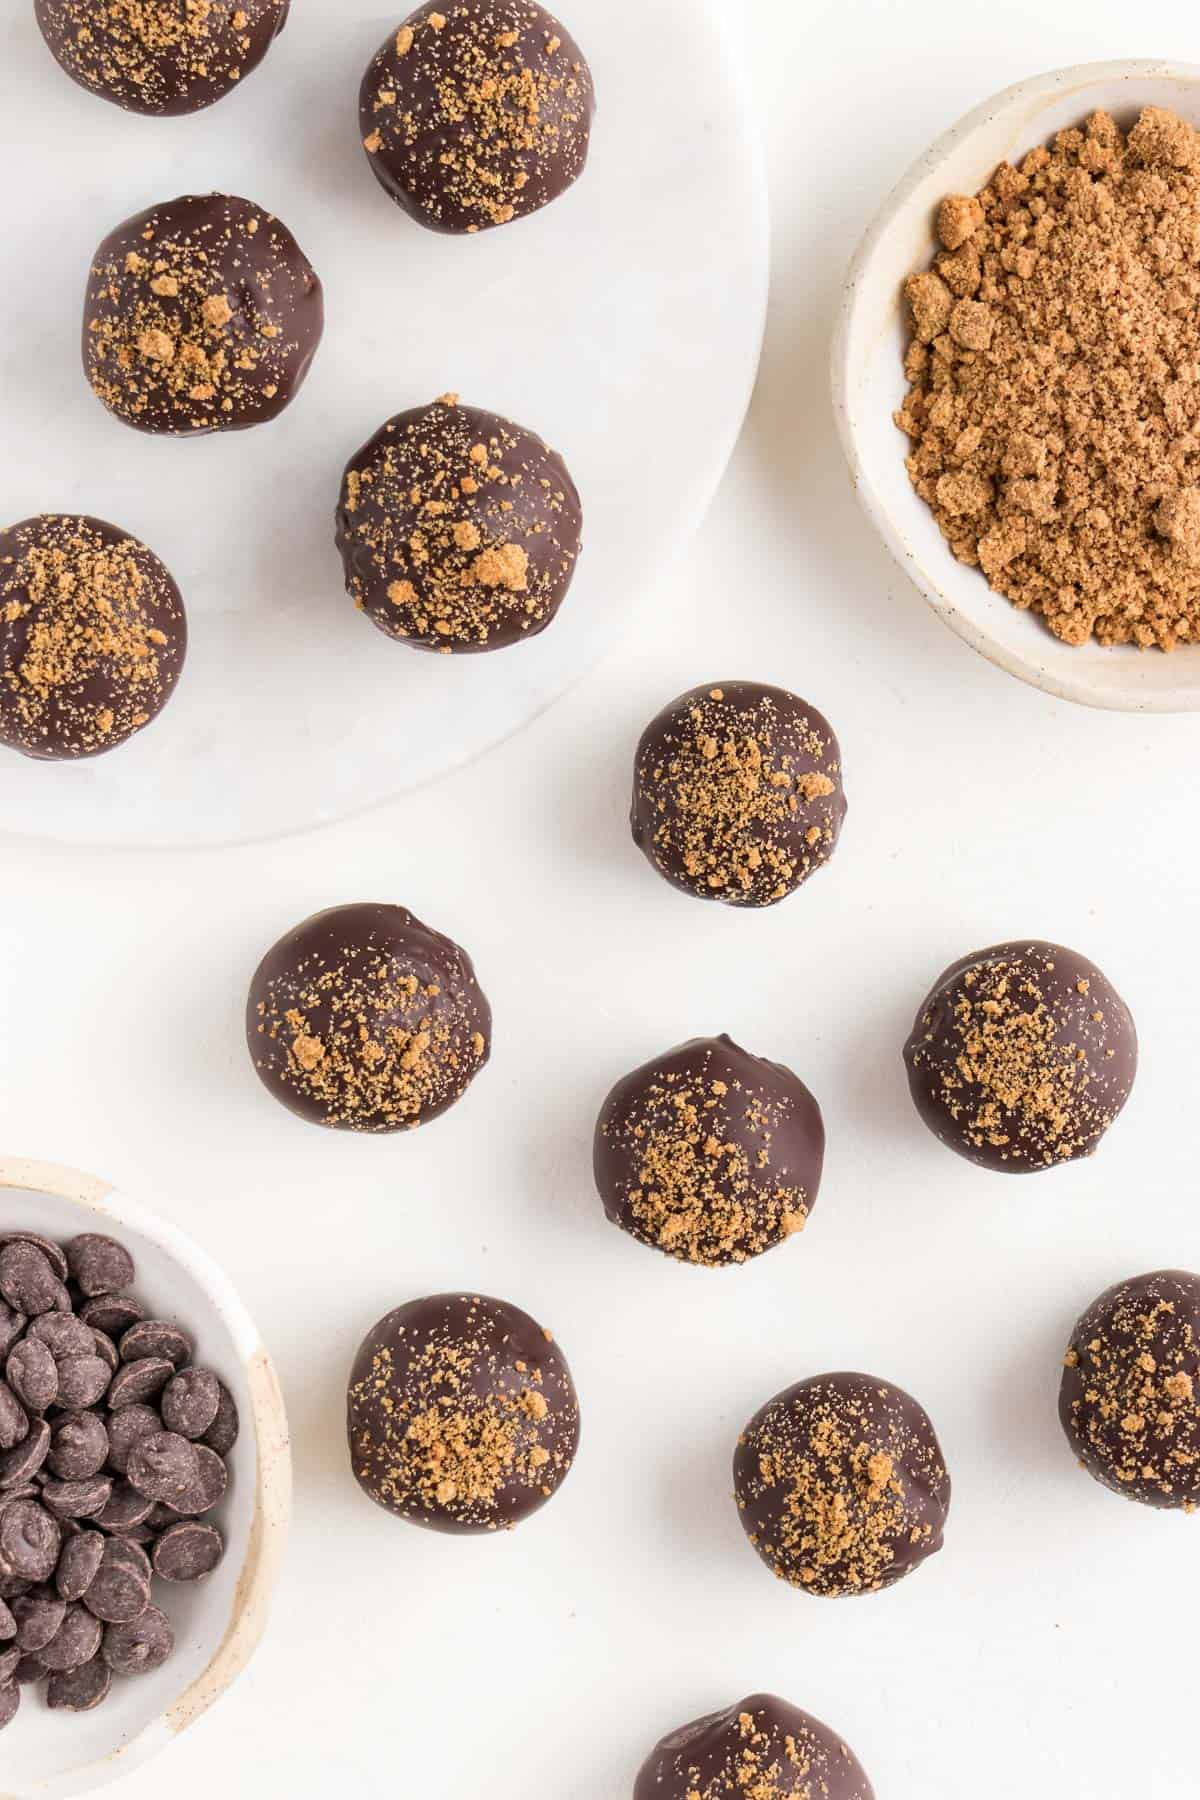 chocolate gingerbread truffles scattered across a white surface beside a small ceramic bowl filled with chocolate chips and crumbled gingersnap cookies